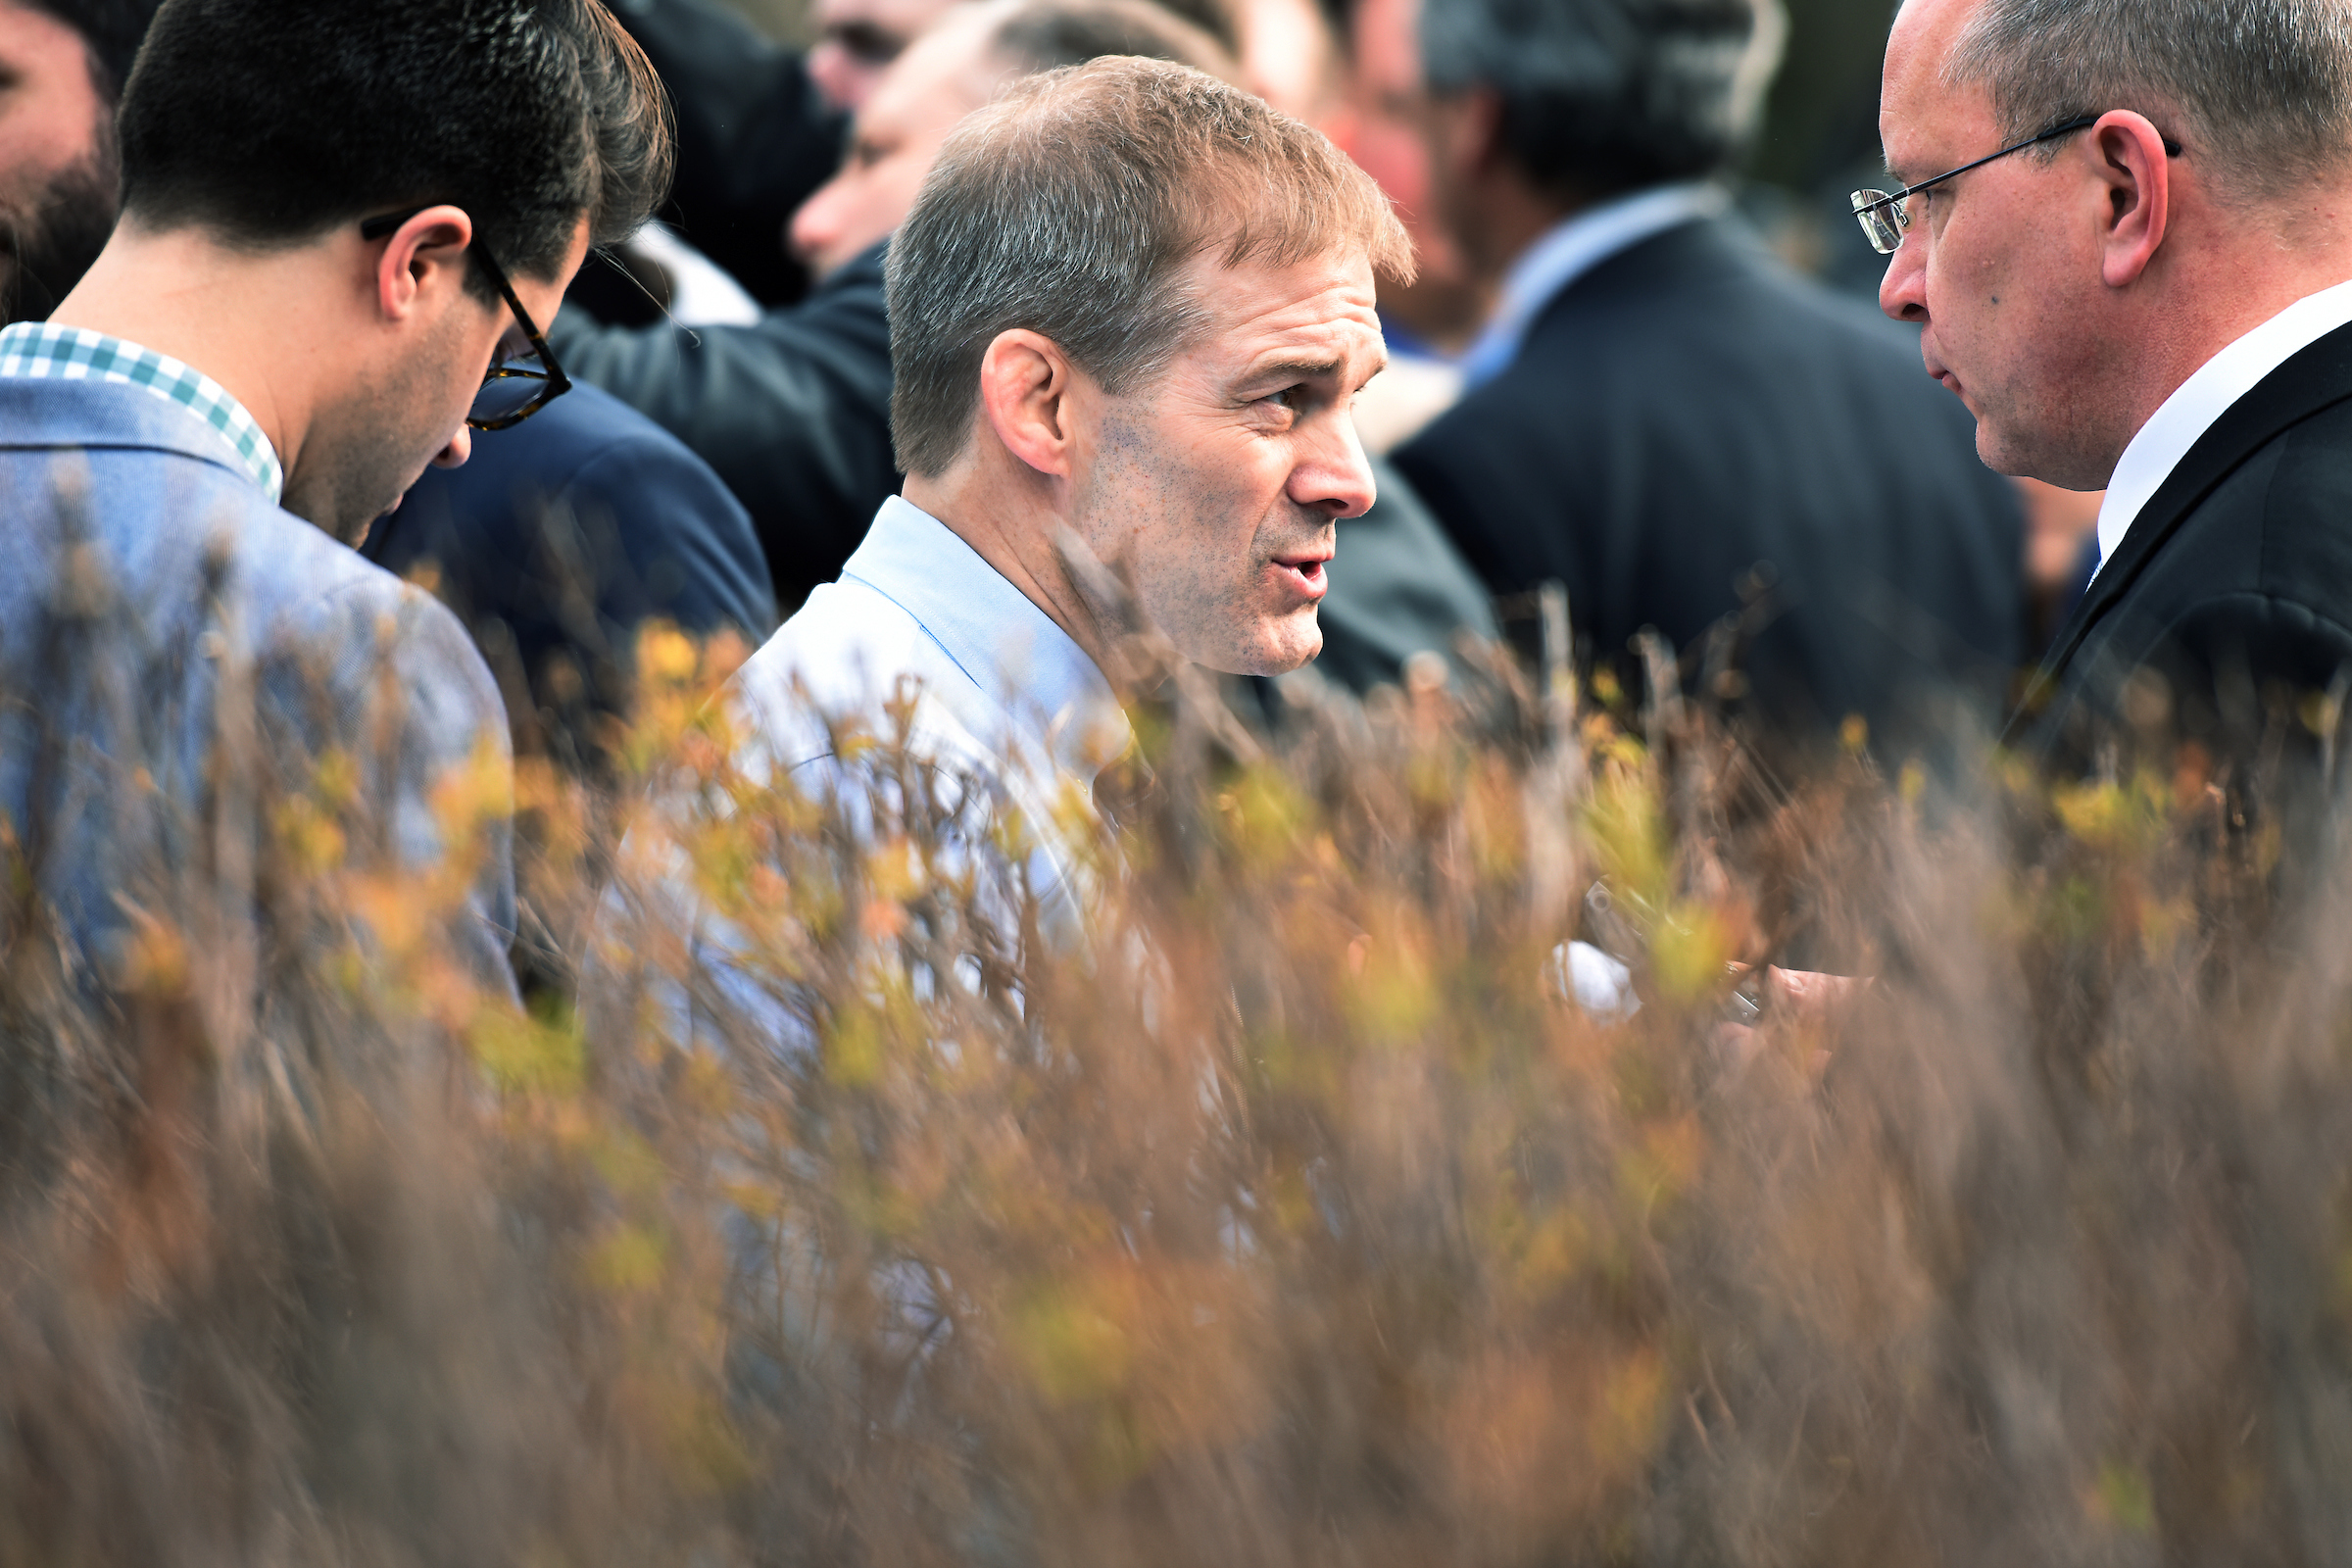 On Tuesday, Rep. Jim Jordan, R-Ohio, speaks with reporters after a news conference with members of the House Freedom Caucus where they criticized the House Republican's new health care plan, the American Health Care Act. (Tom Williams/CQ Roll Call)